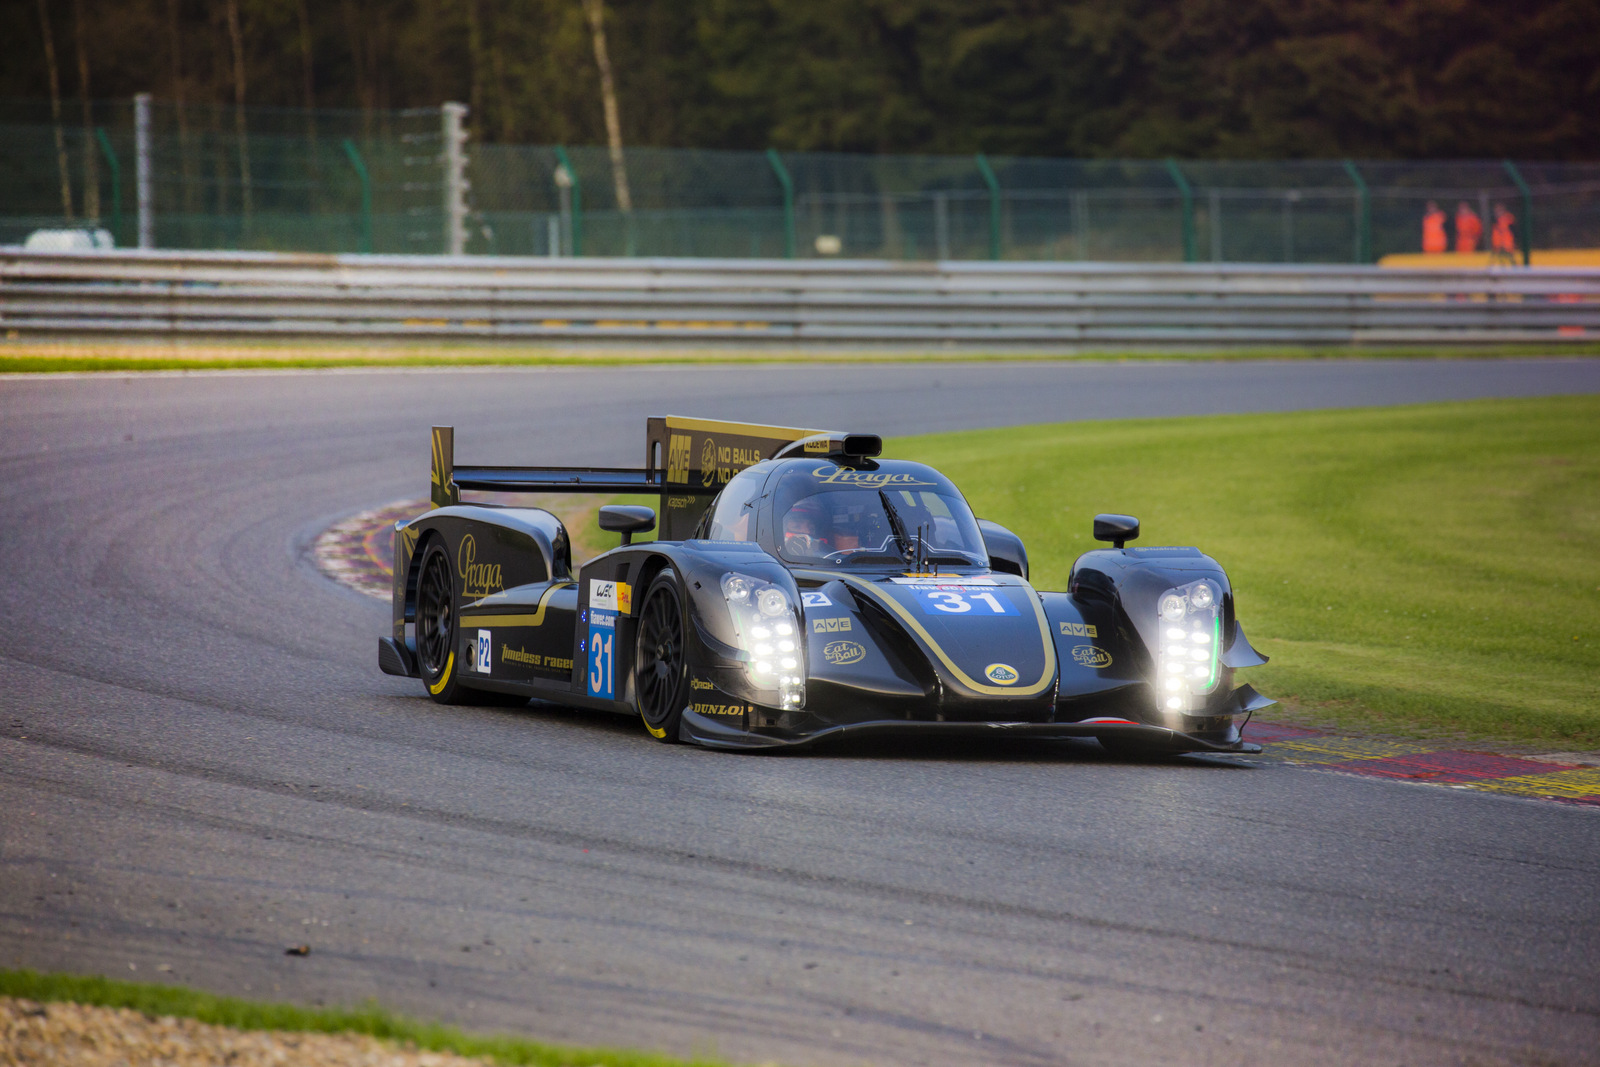 Lotus/Praga at the WEC 6H of Spa